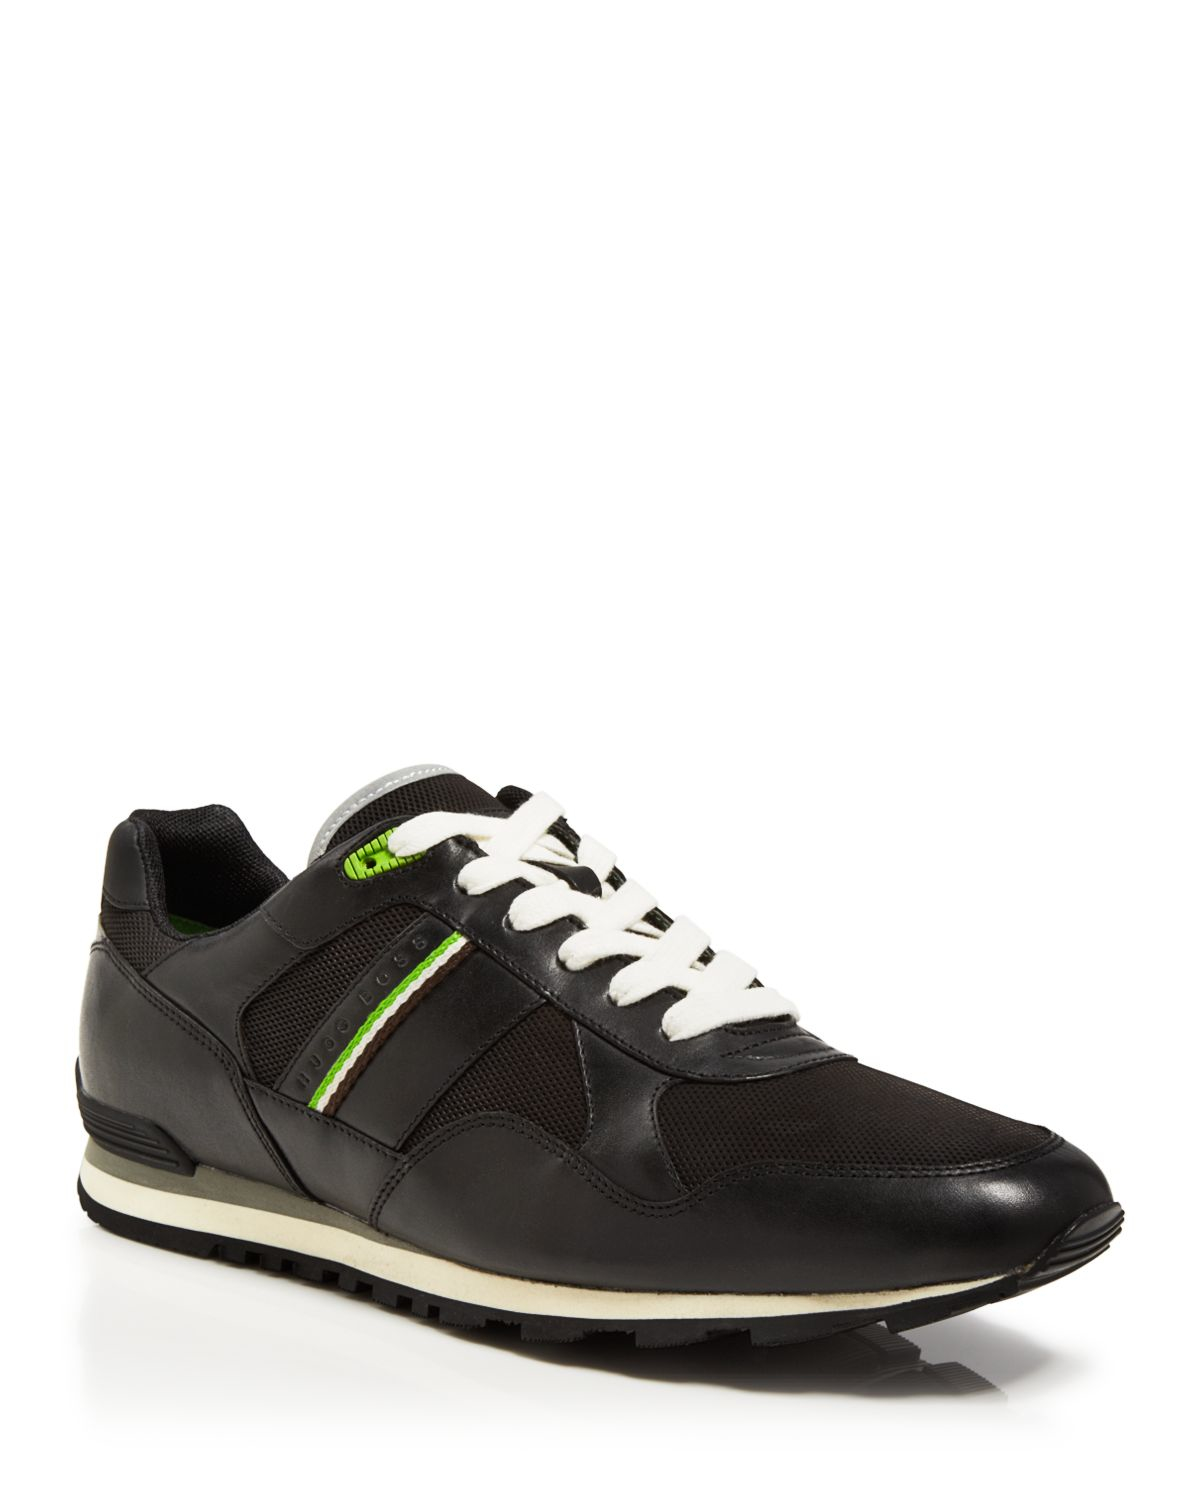 lyst boss boss green runcool perforated sneakers in black for men. Black Bedroom Furniture Sets. Home Design Ideas